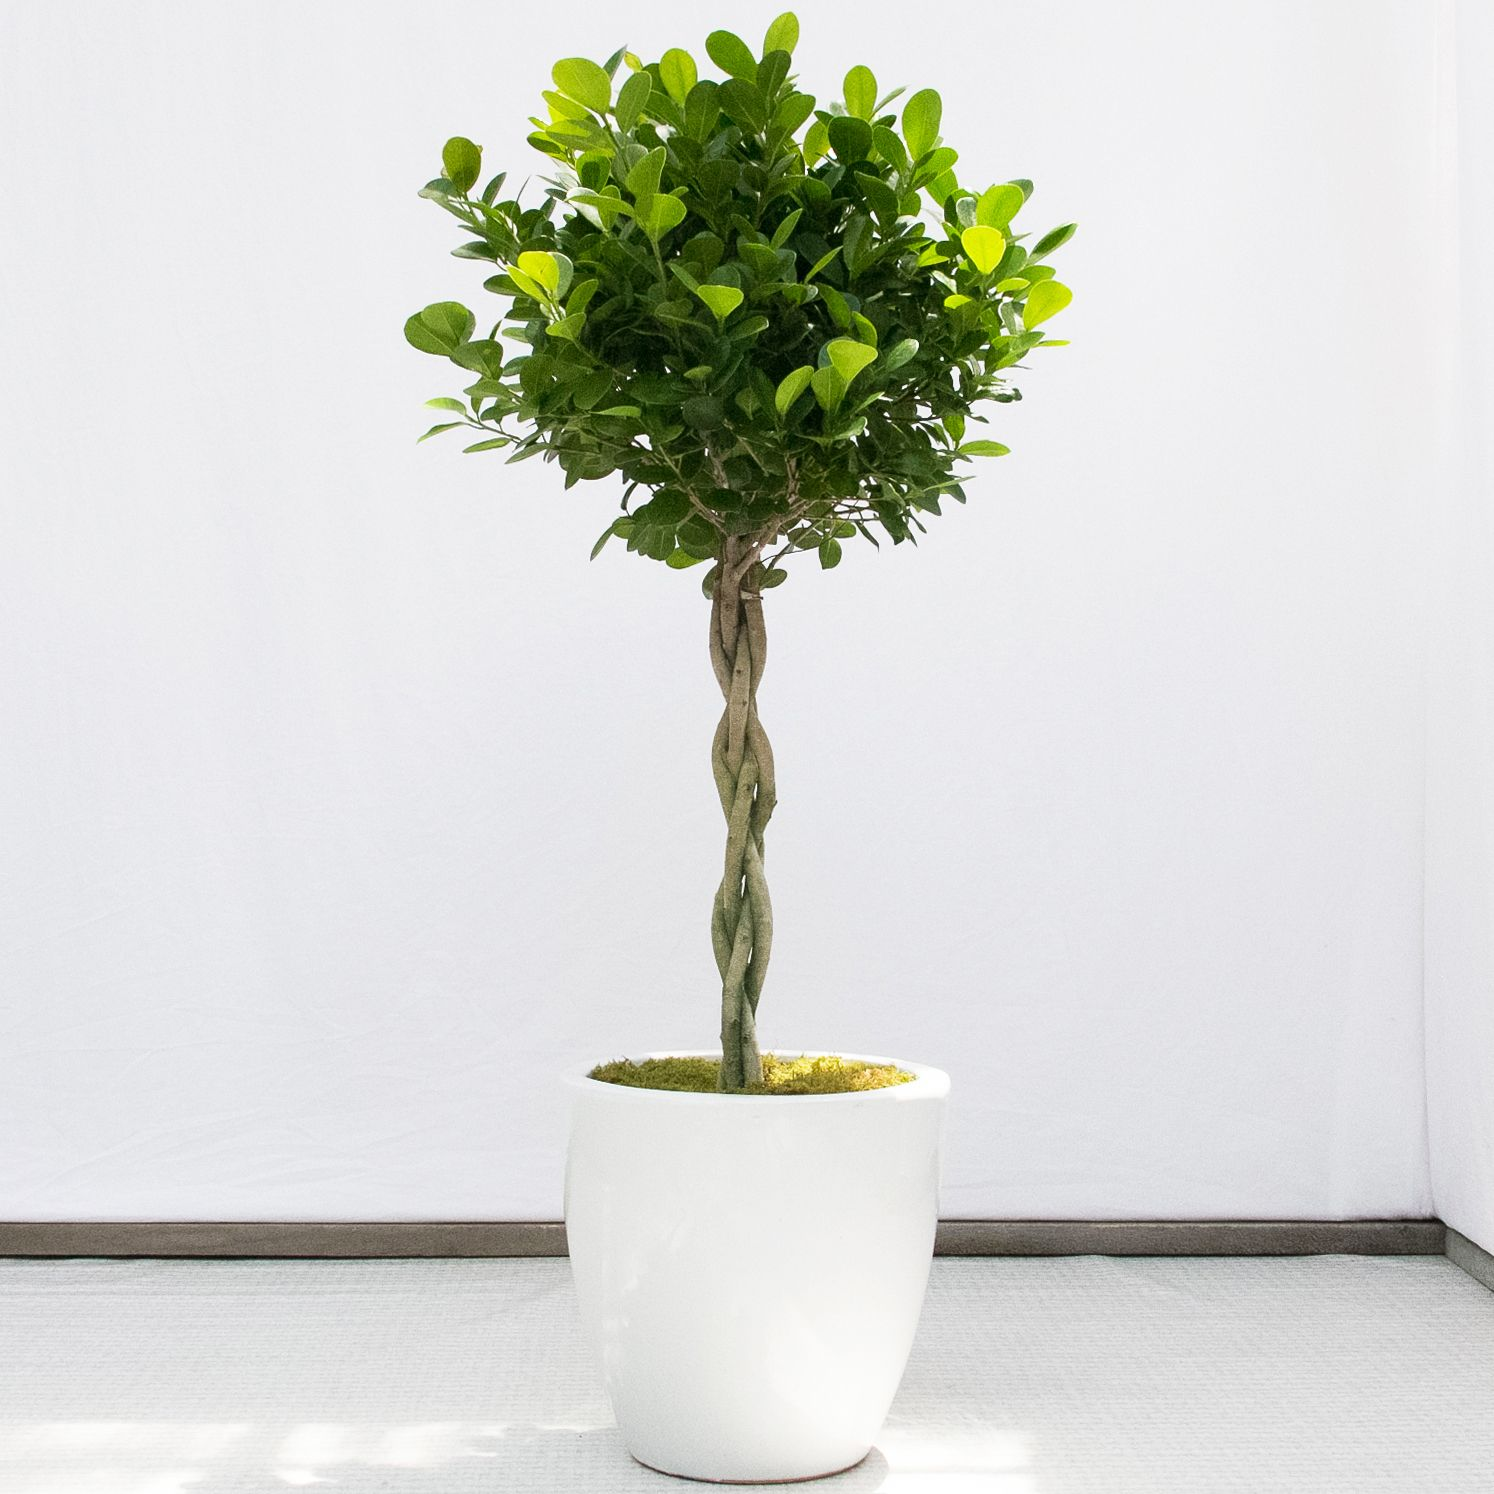 Gummibaum Verzweigen Ficus Danielle Braid Fond Of The Ficus This Arboreal Cutie